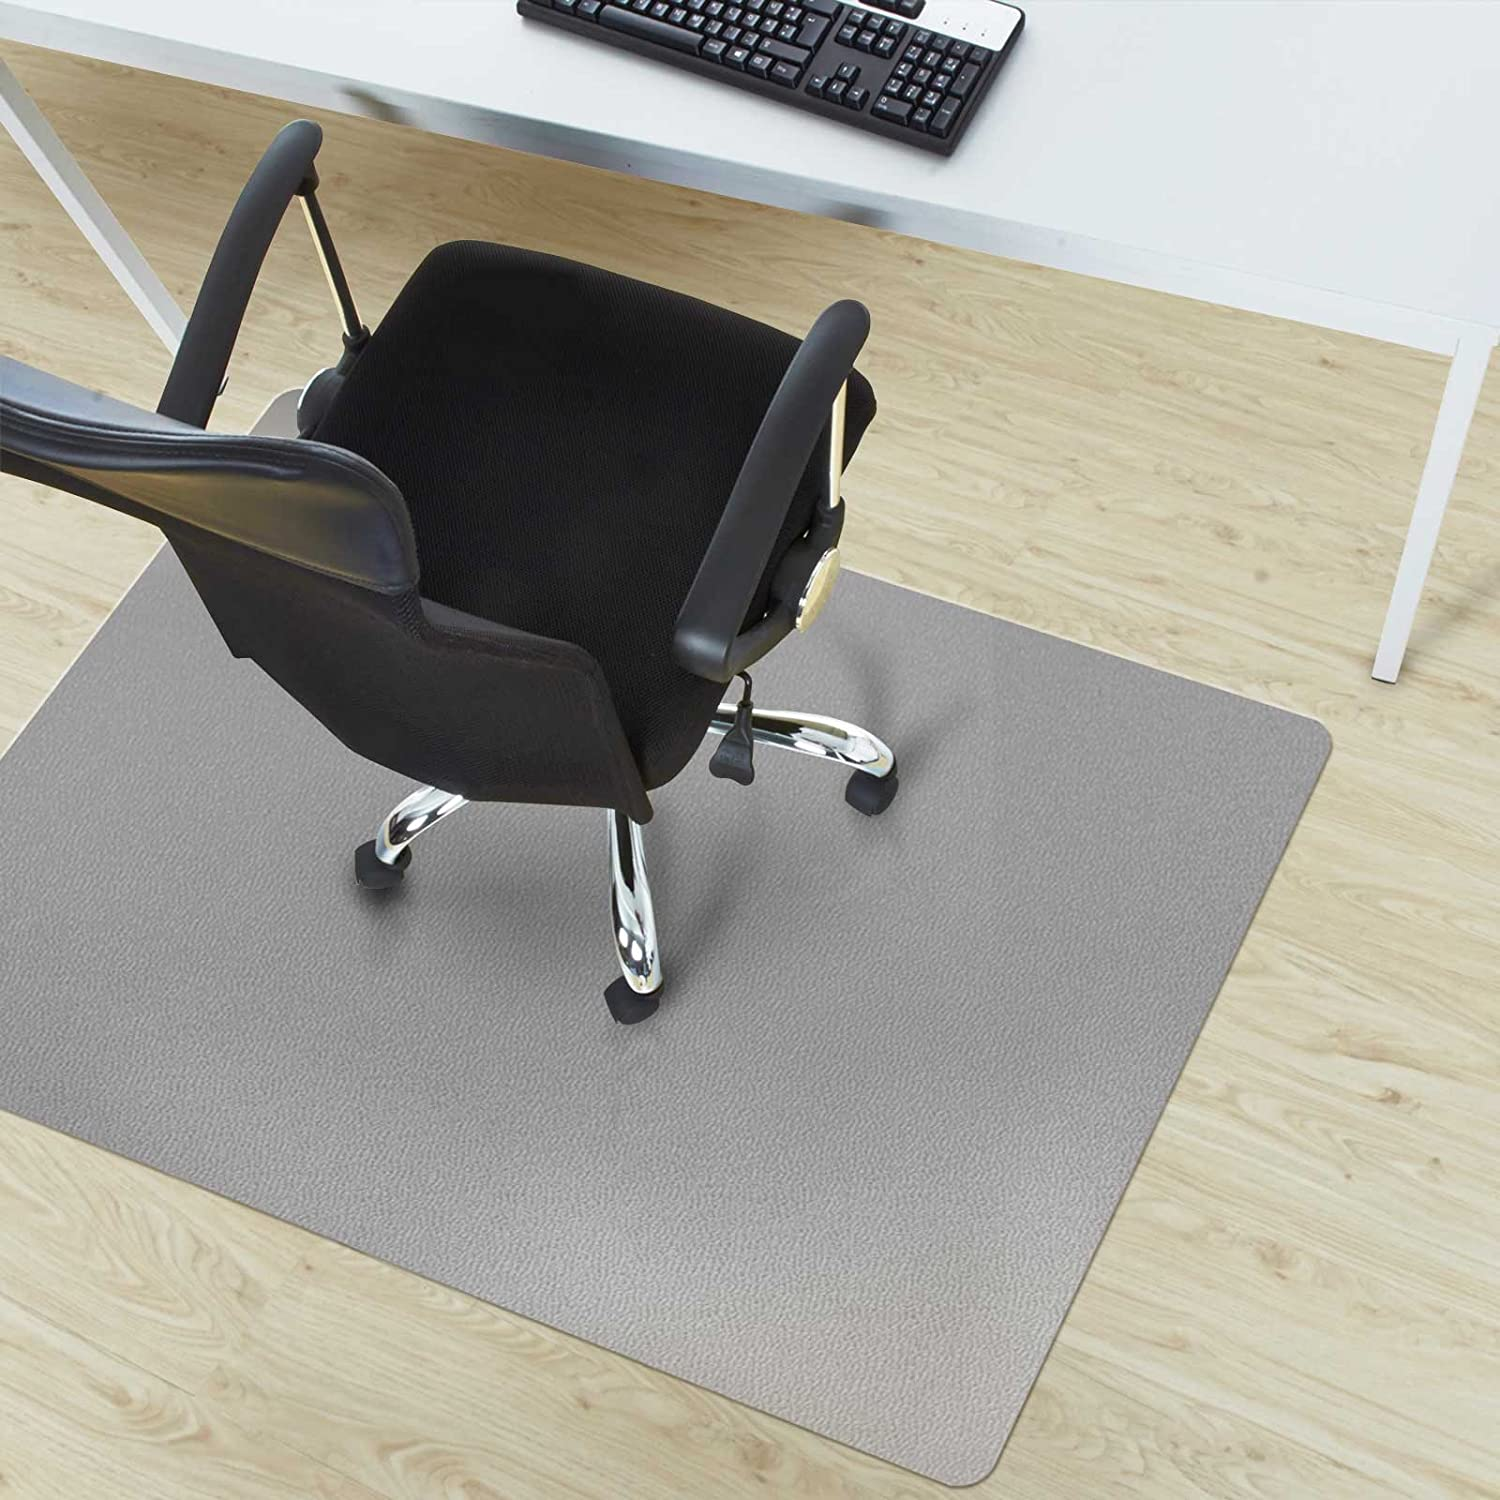 Amazon.com : Chair Mat for Hard Floors | Polypropylene Chair Floor ...